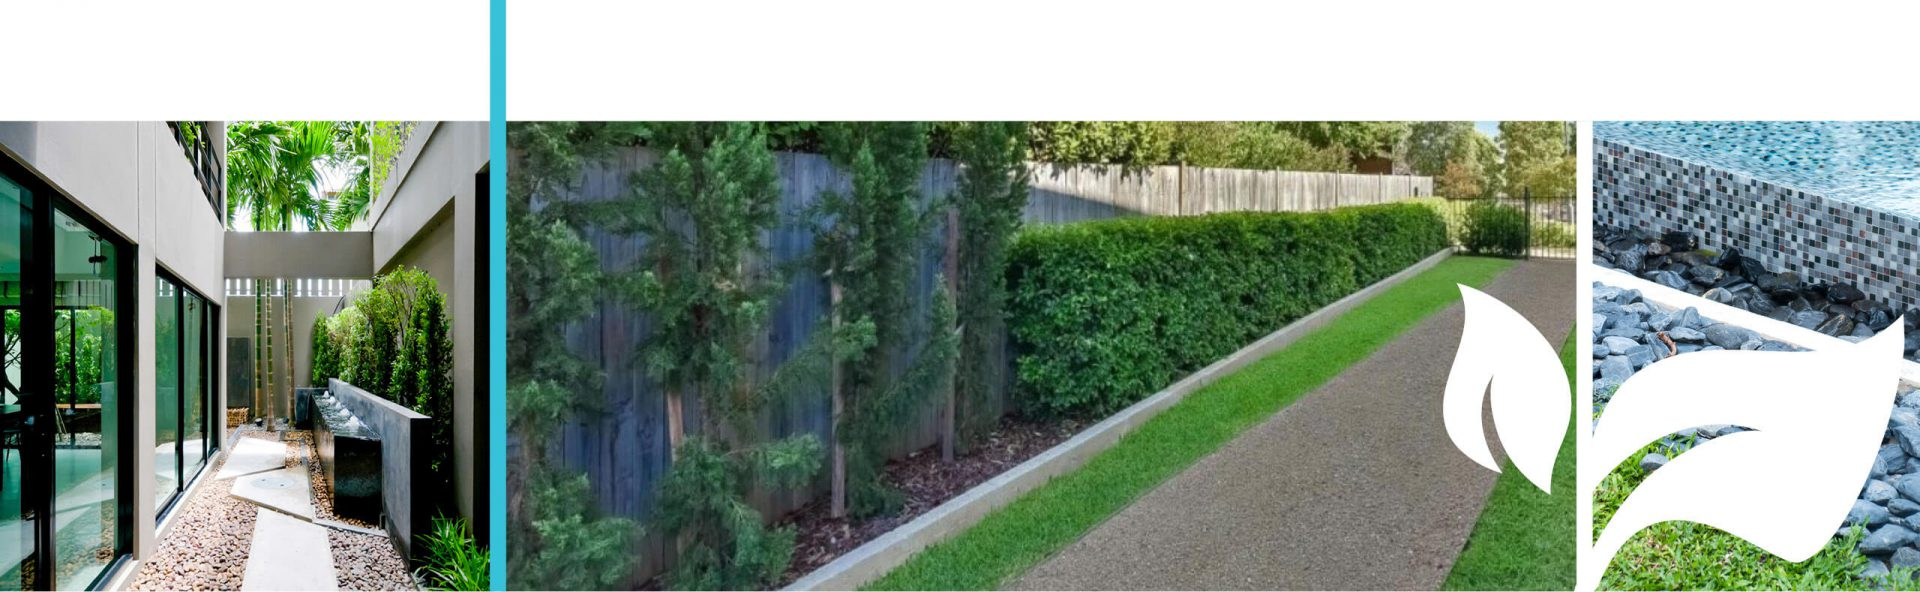 Manicured exterior lawn walkway